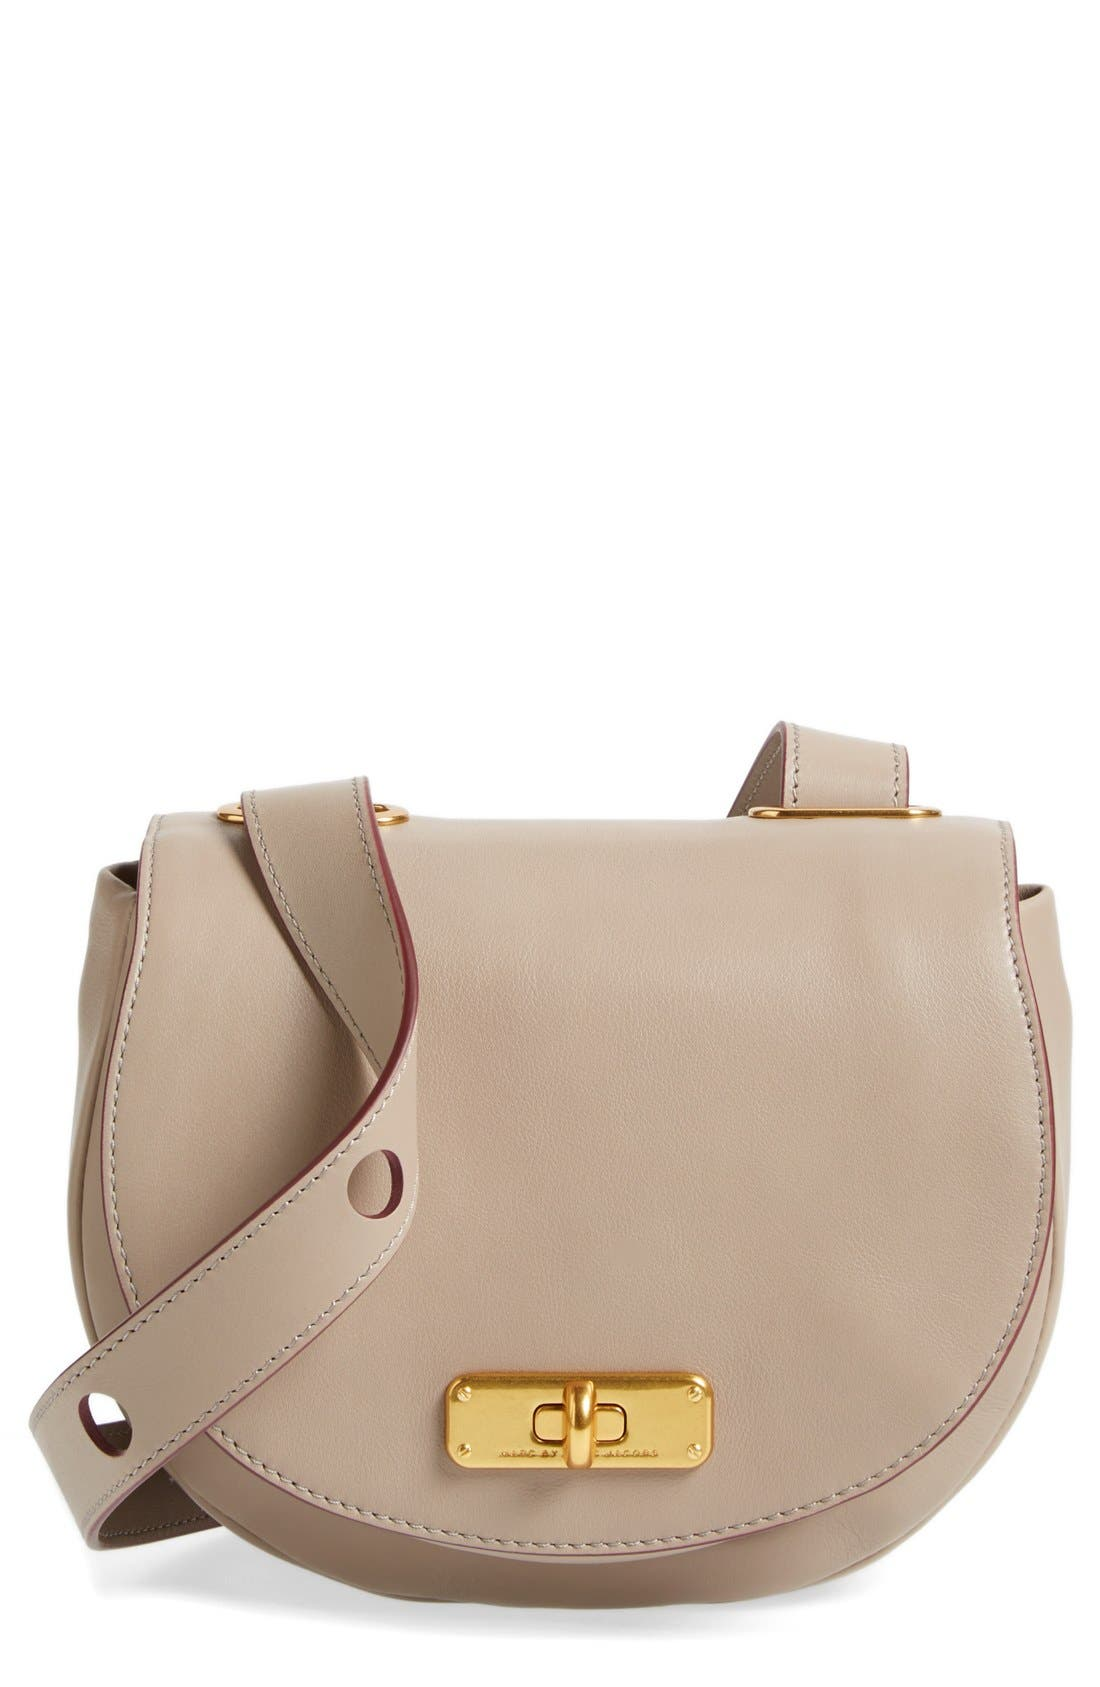 Main Image - MARC BY MARC JACOBS 'Donut' Leather Crossbody Bag